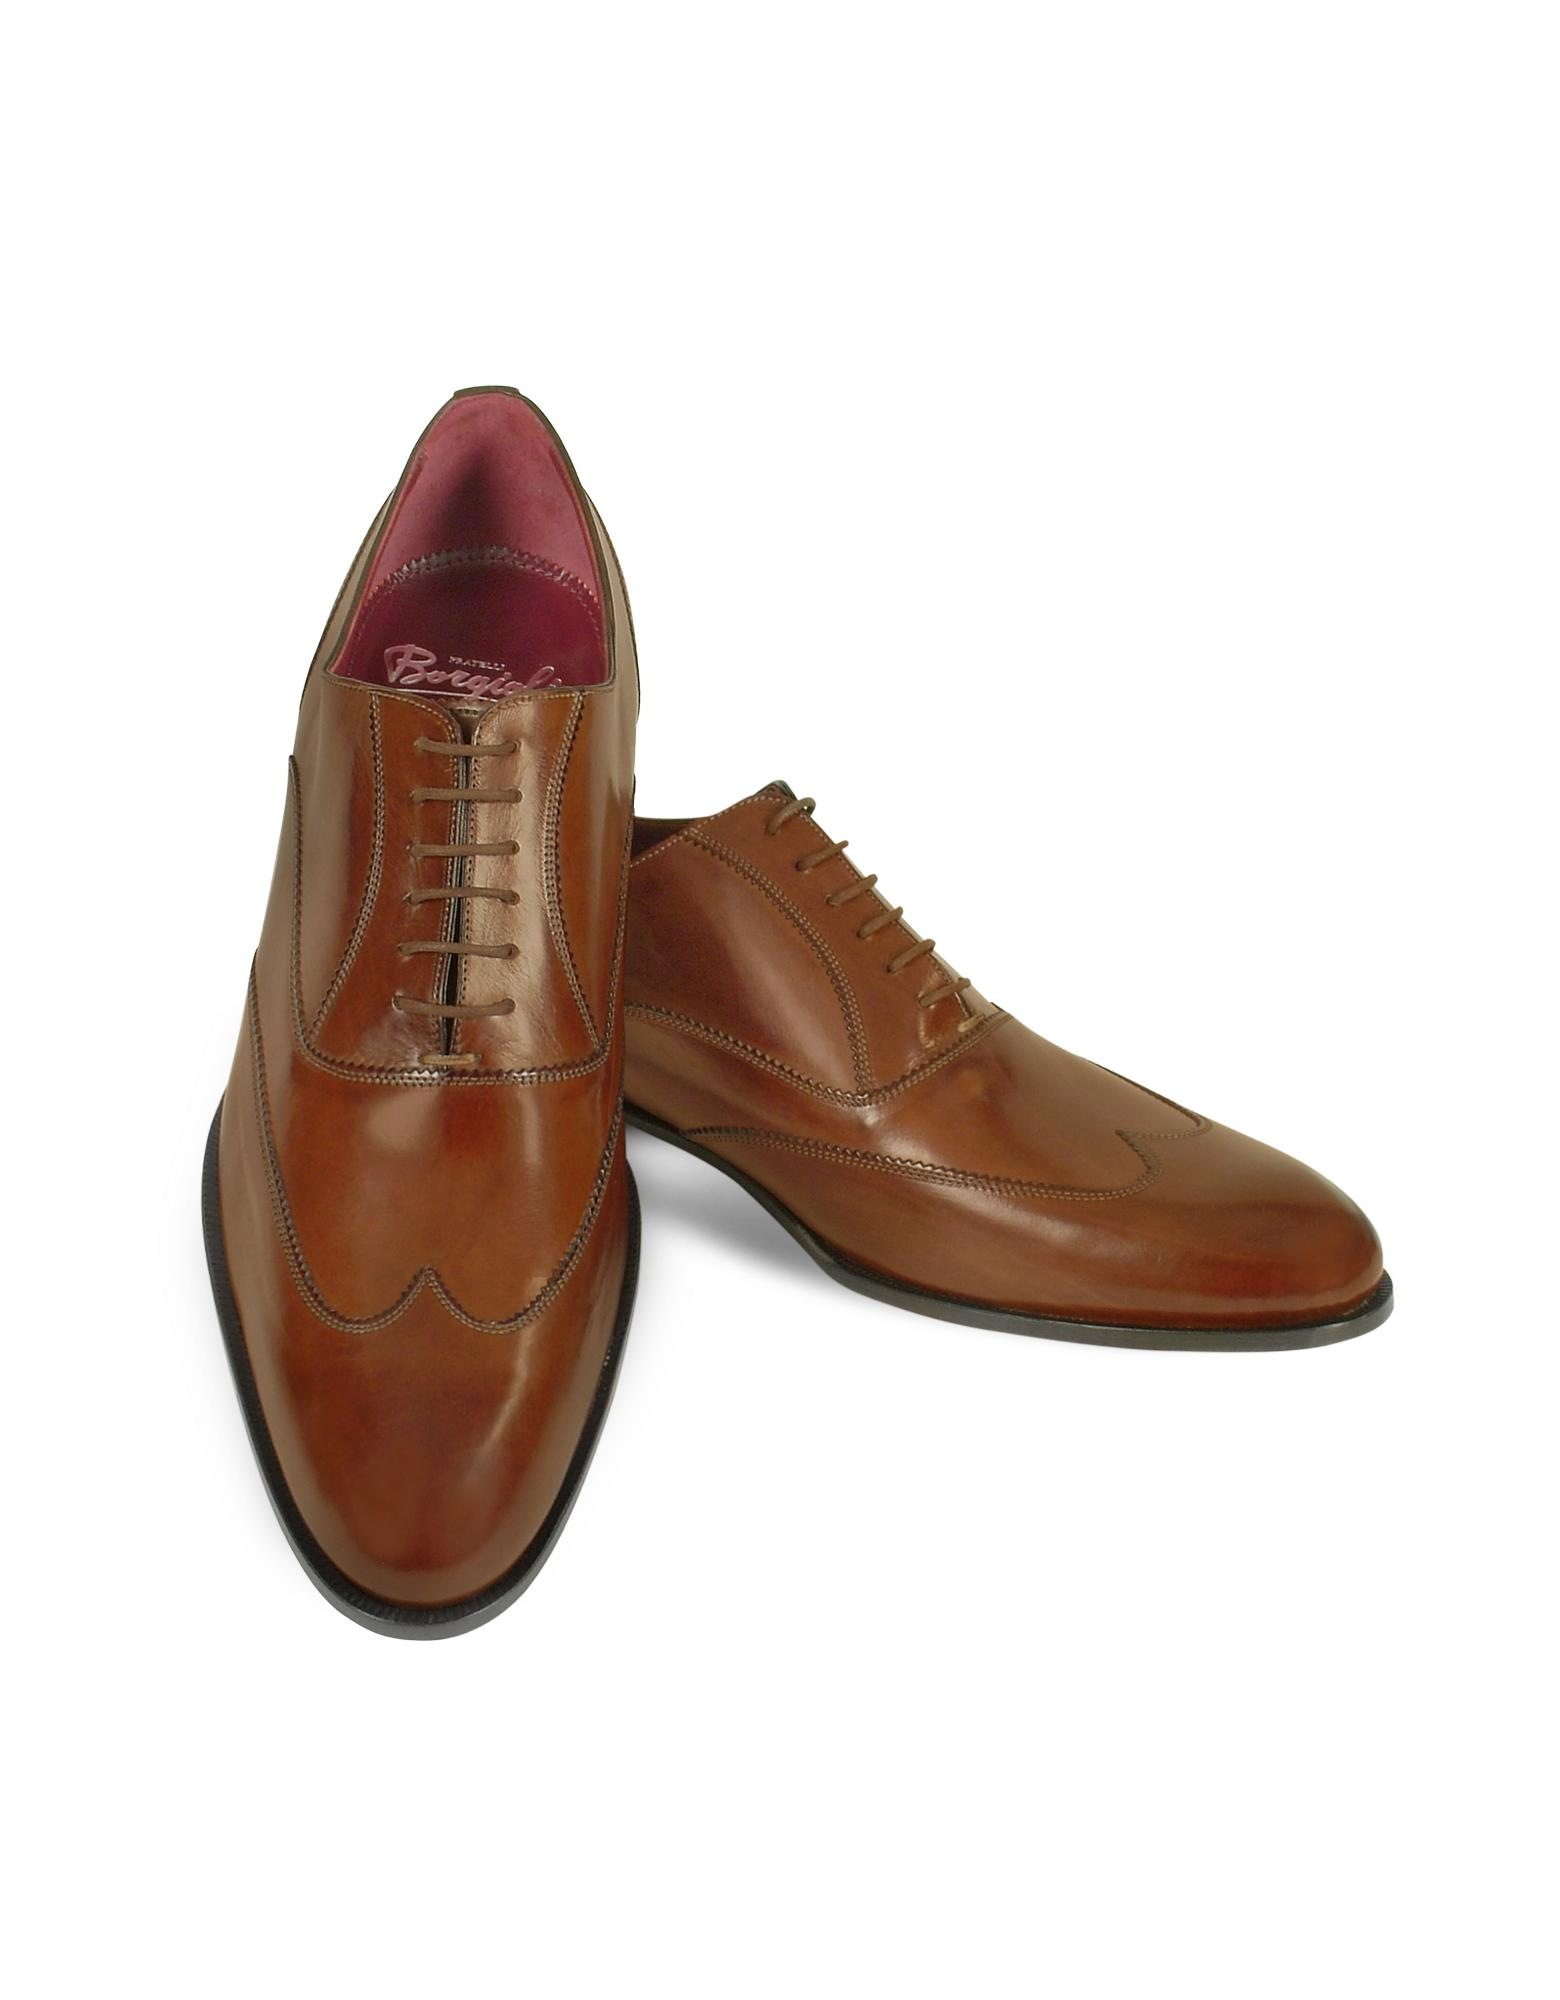 Italian Mens Leather Oxford Shoes